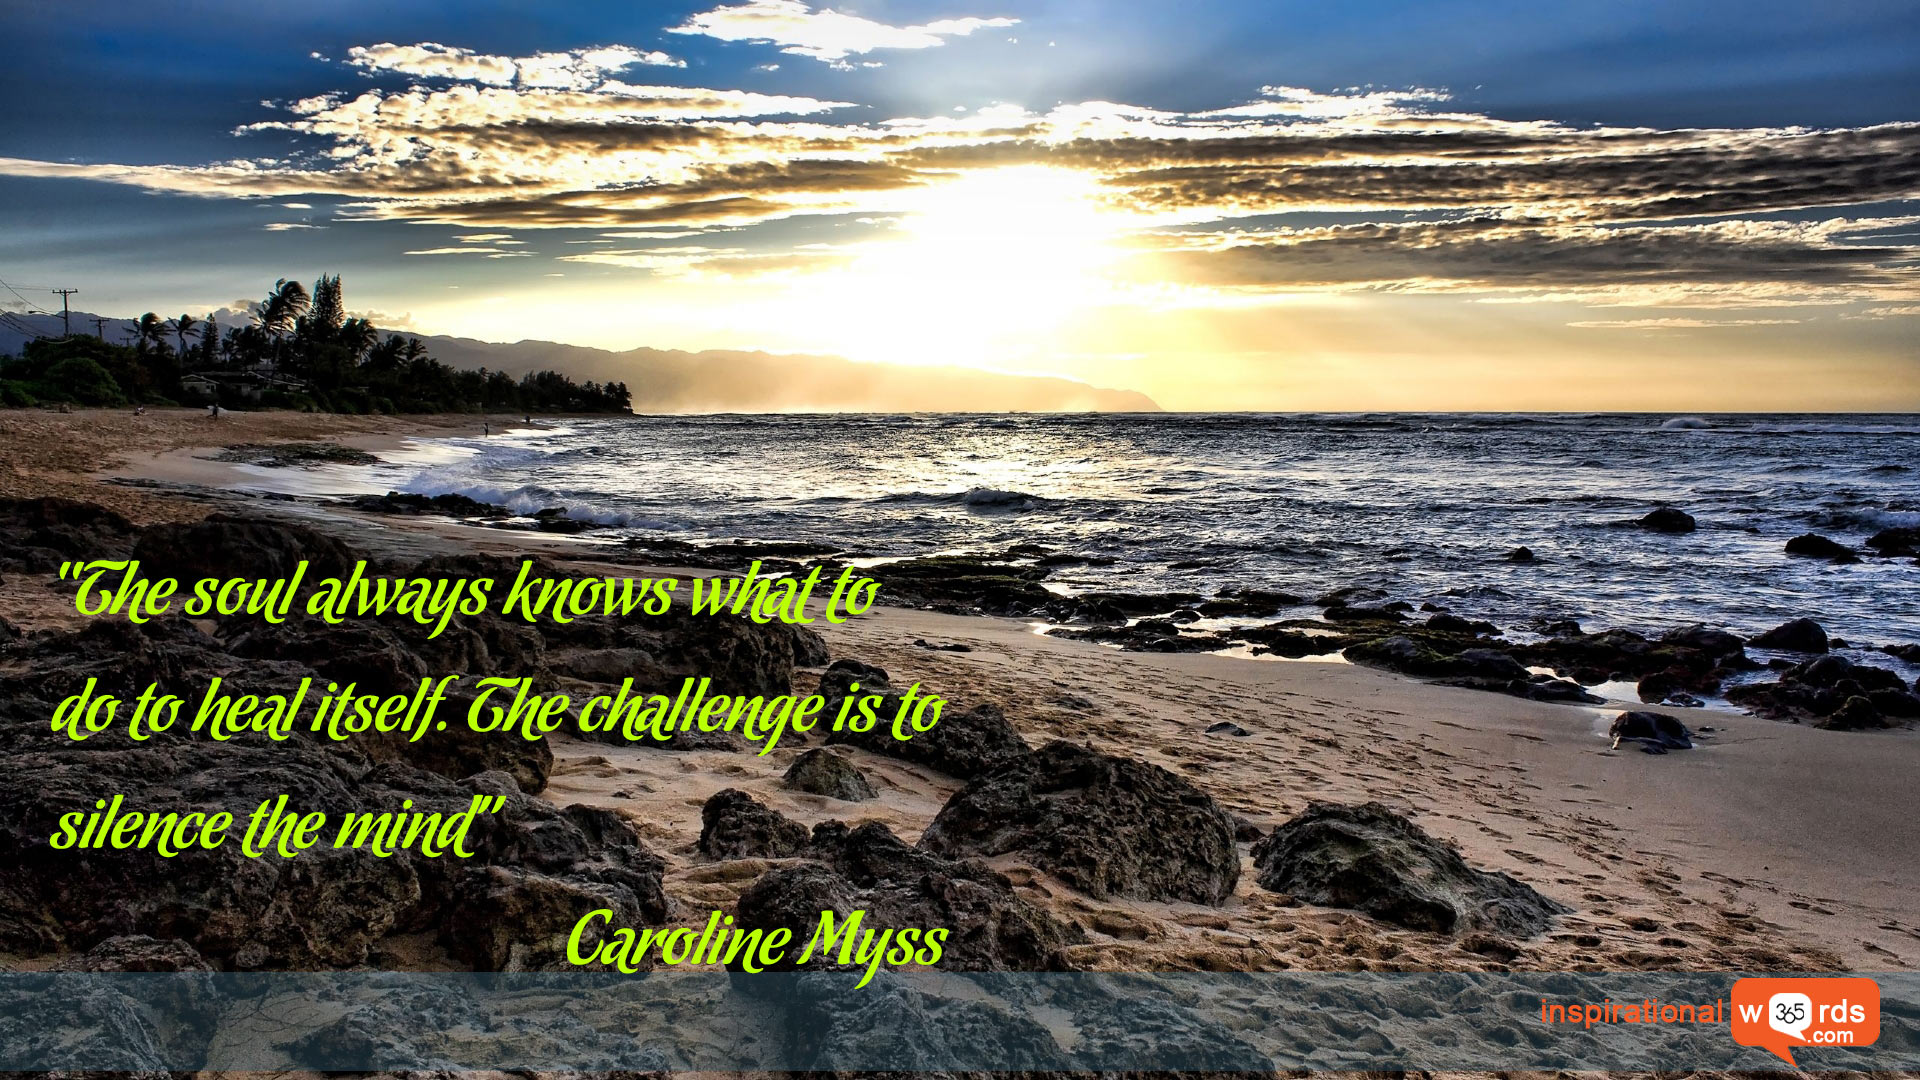 Inspirational Wallpaper Quote by Caroline Myss